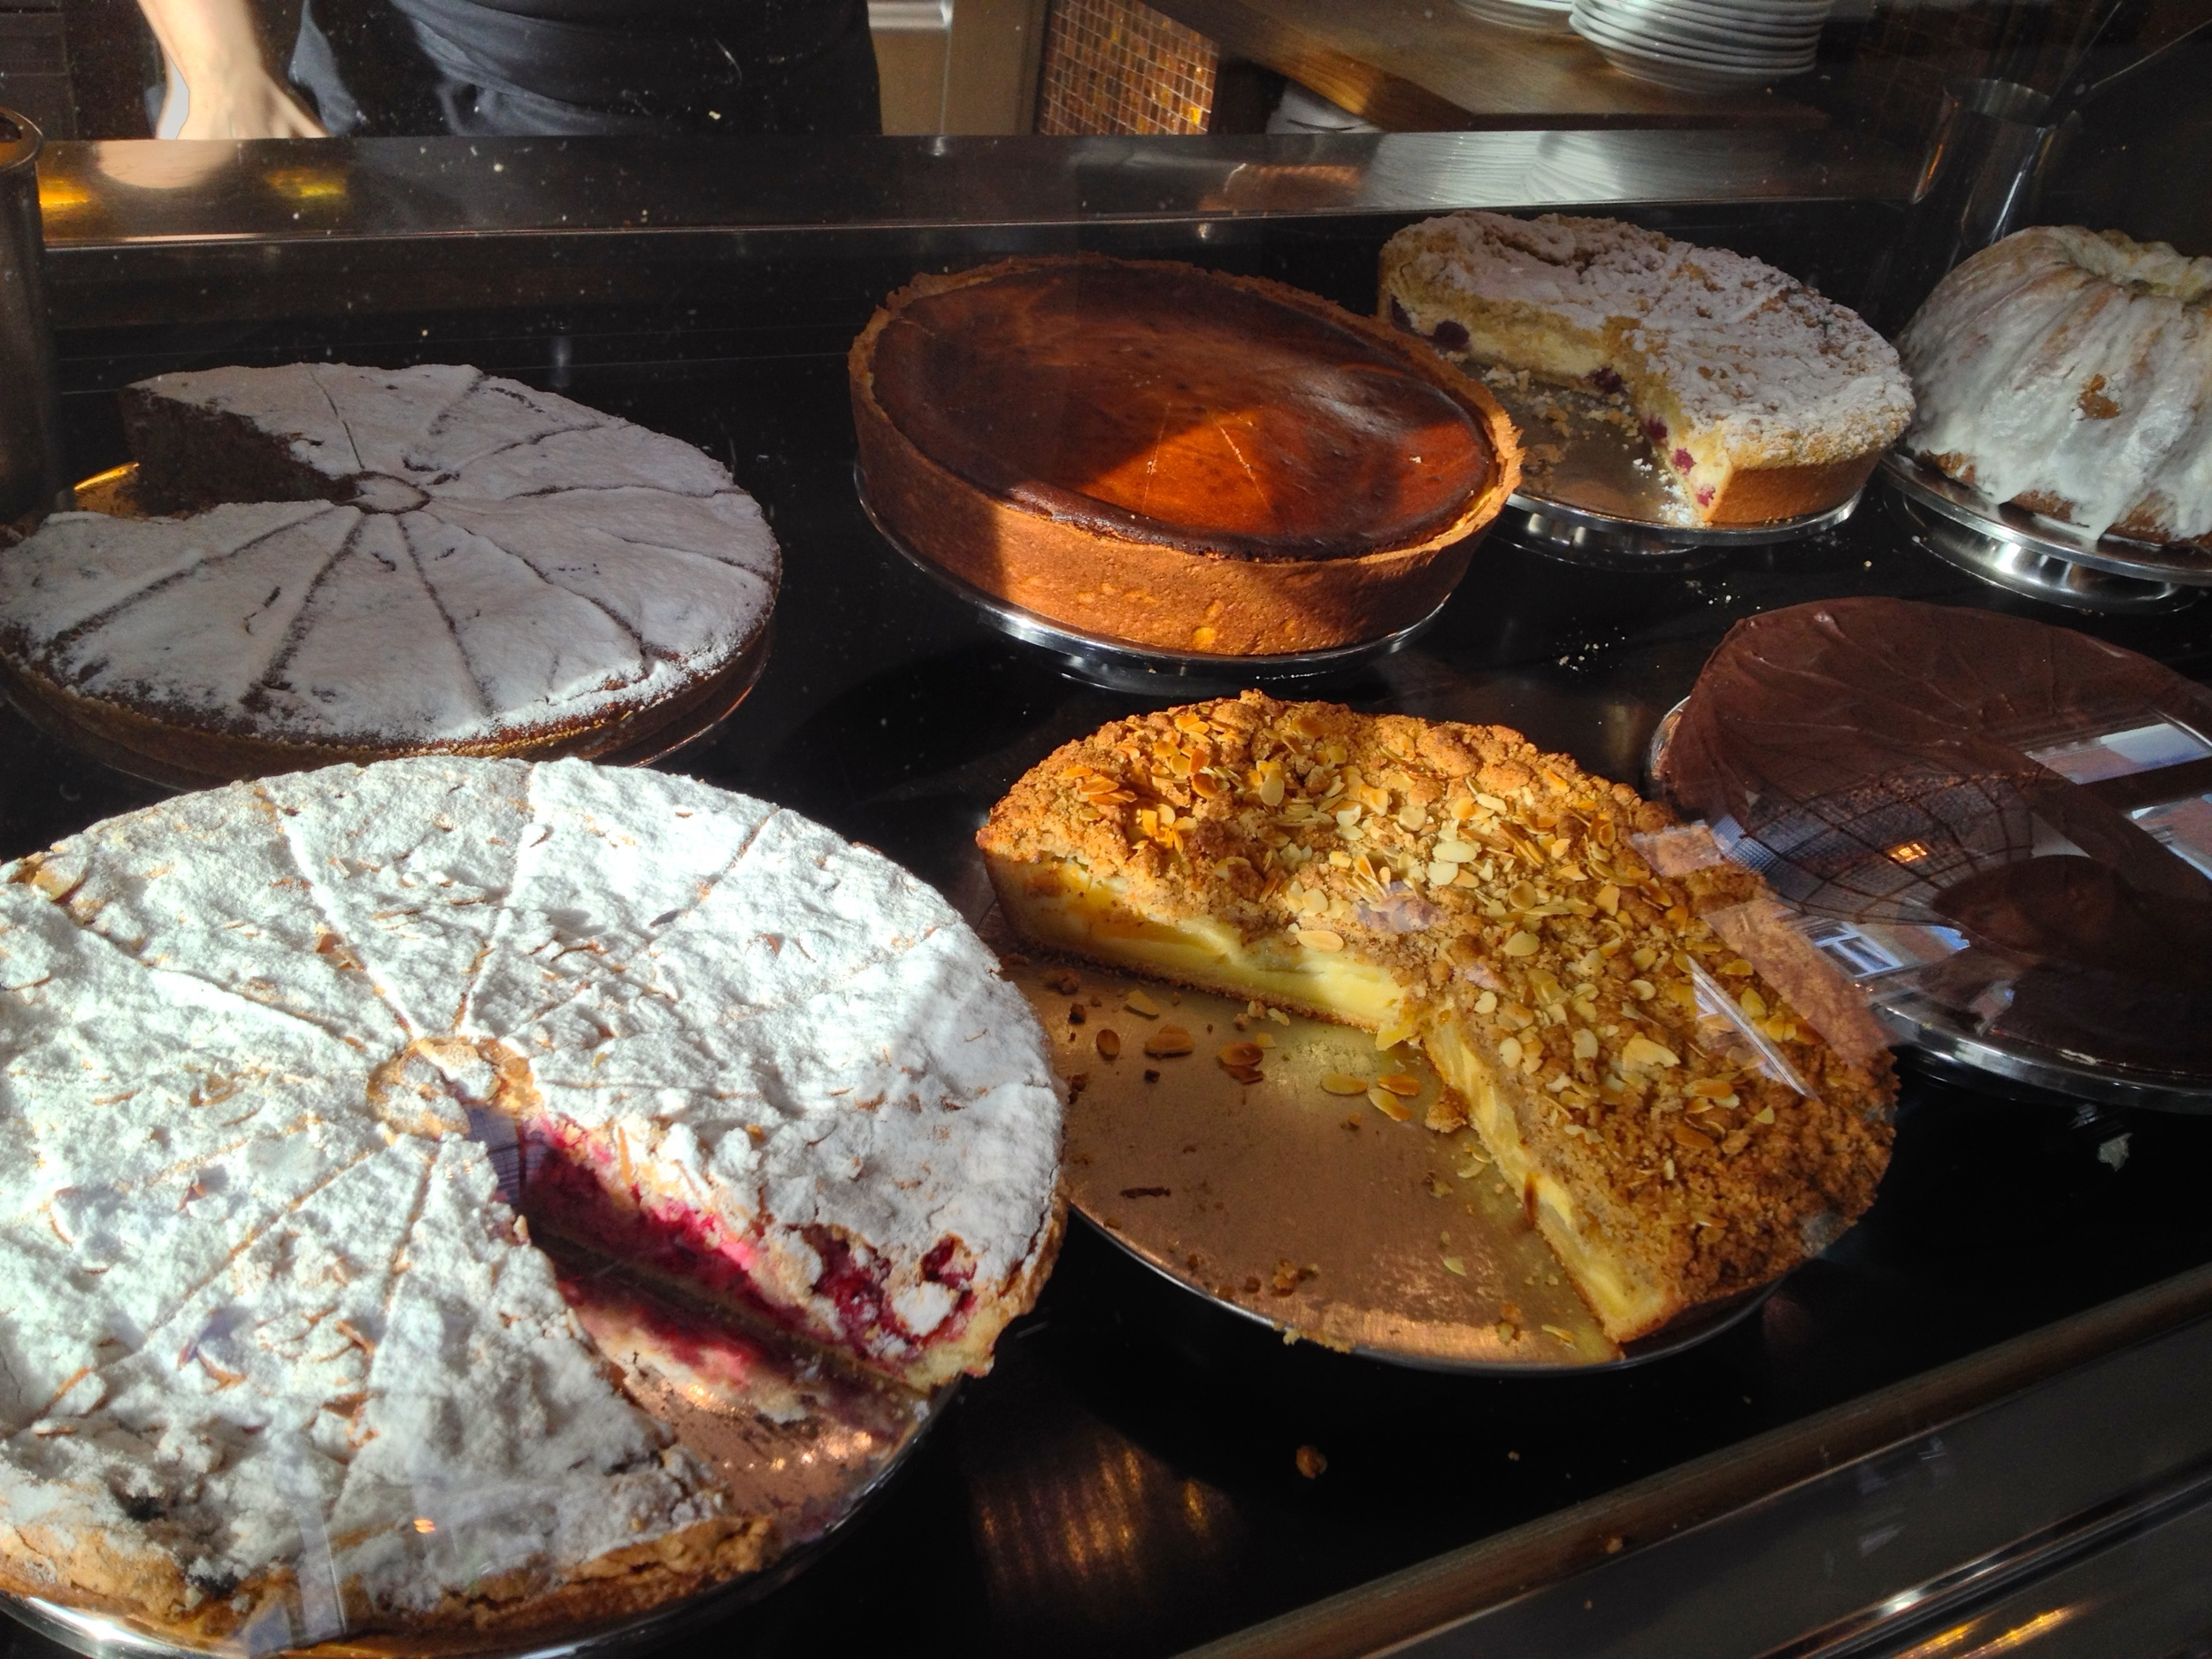 About half of the cakes on display at  Hüftengold